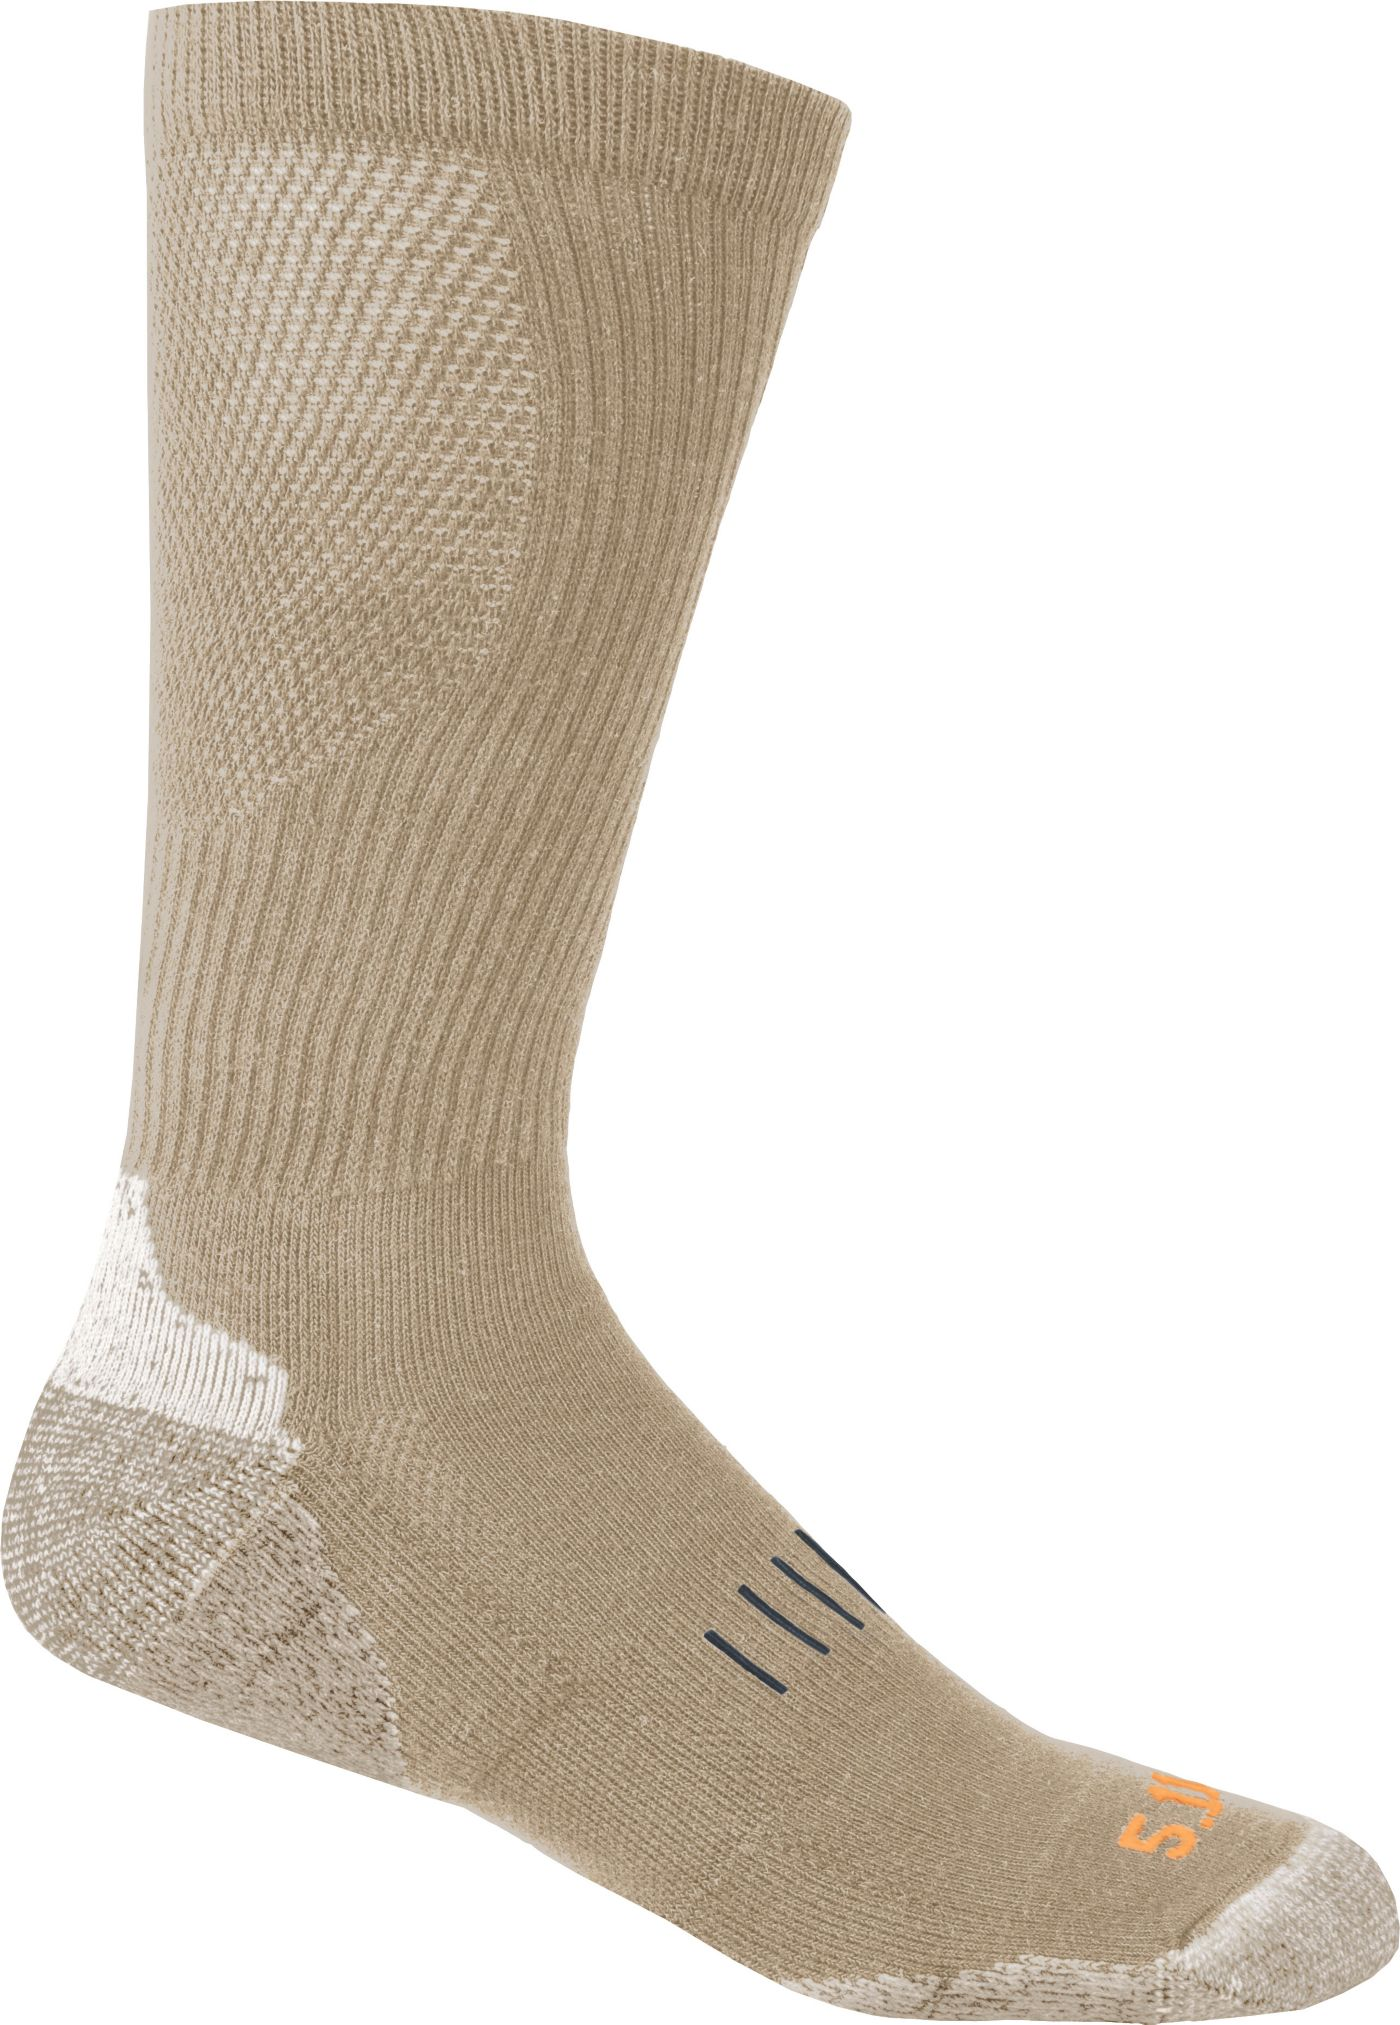 5.11 Tactical Year Round Over-the-Calf Socks